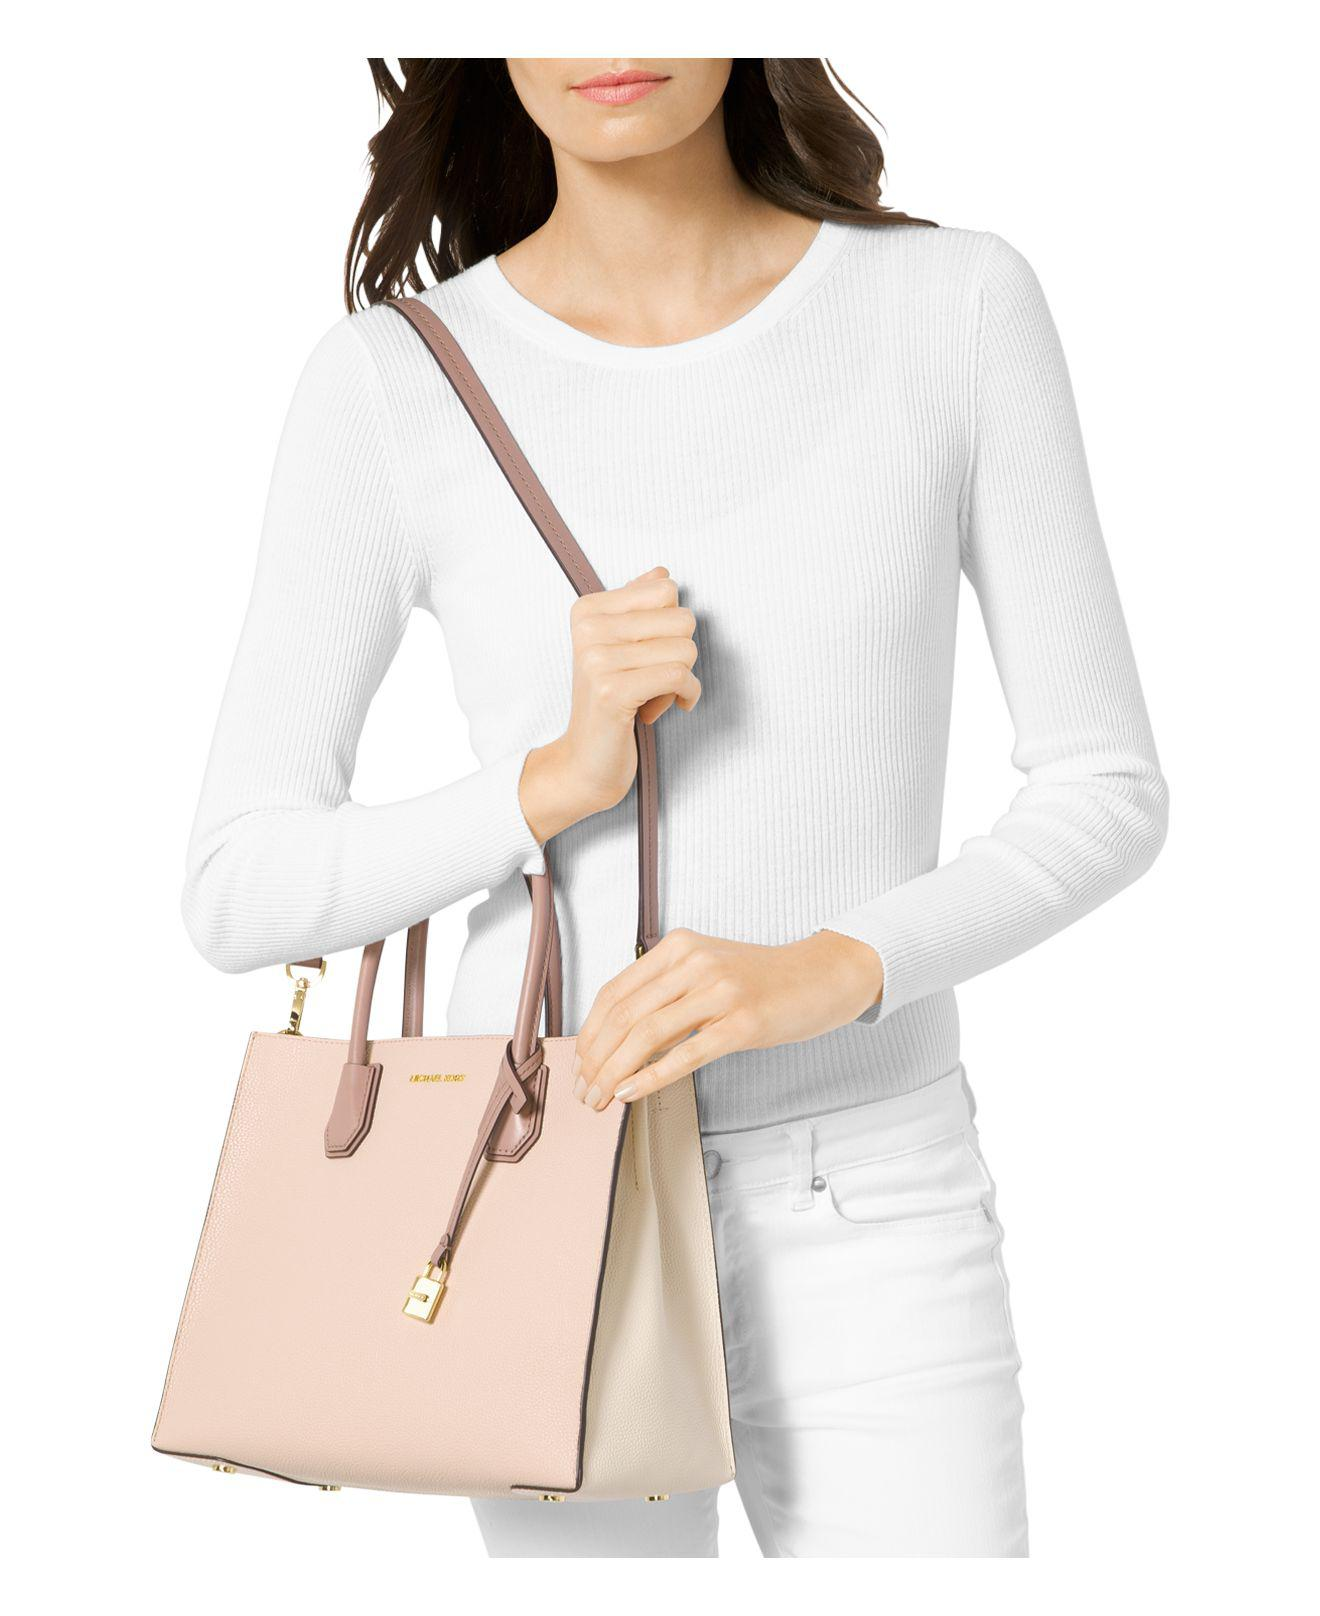 「michael kors mercer large leather tote pink」的圖片搜尋結果